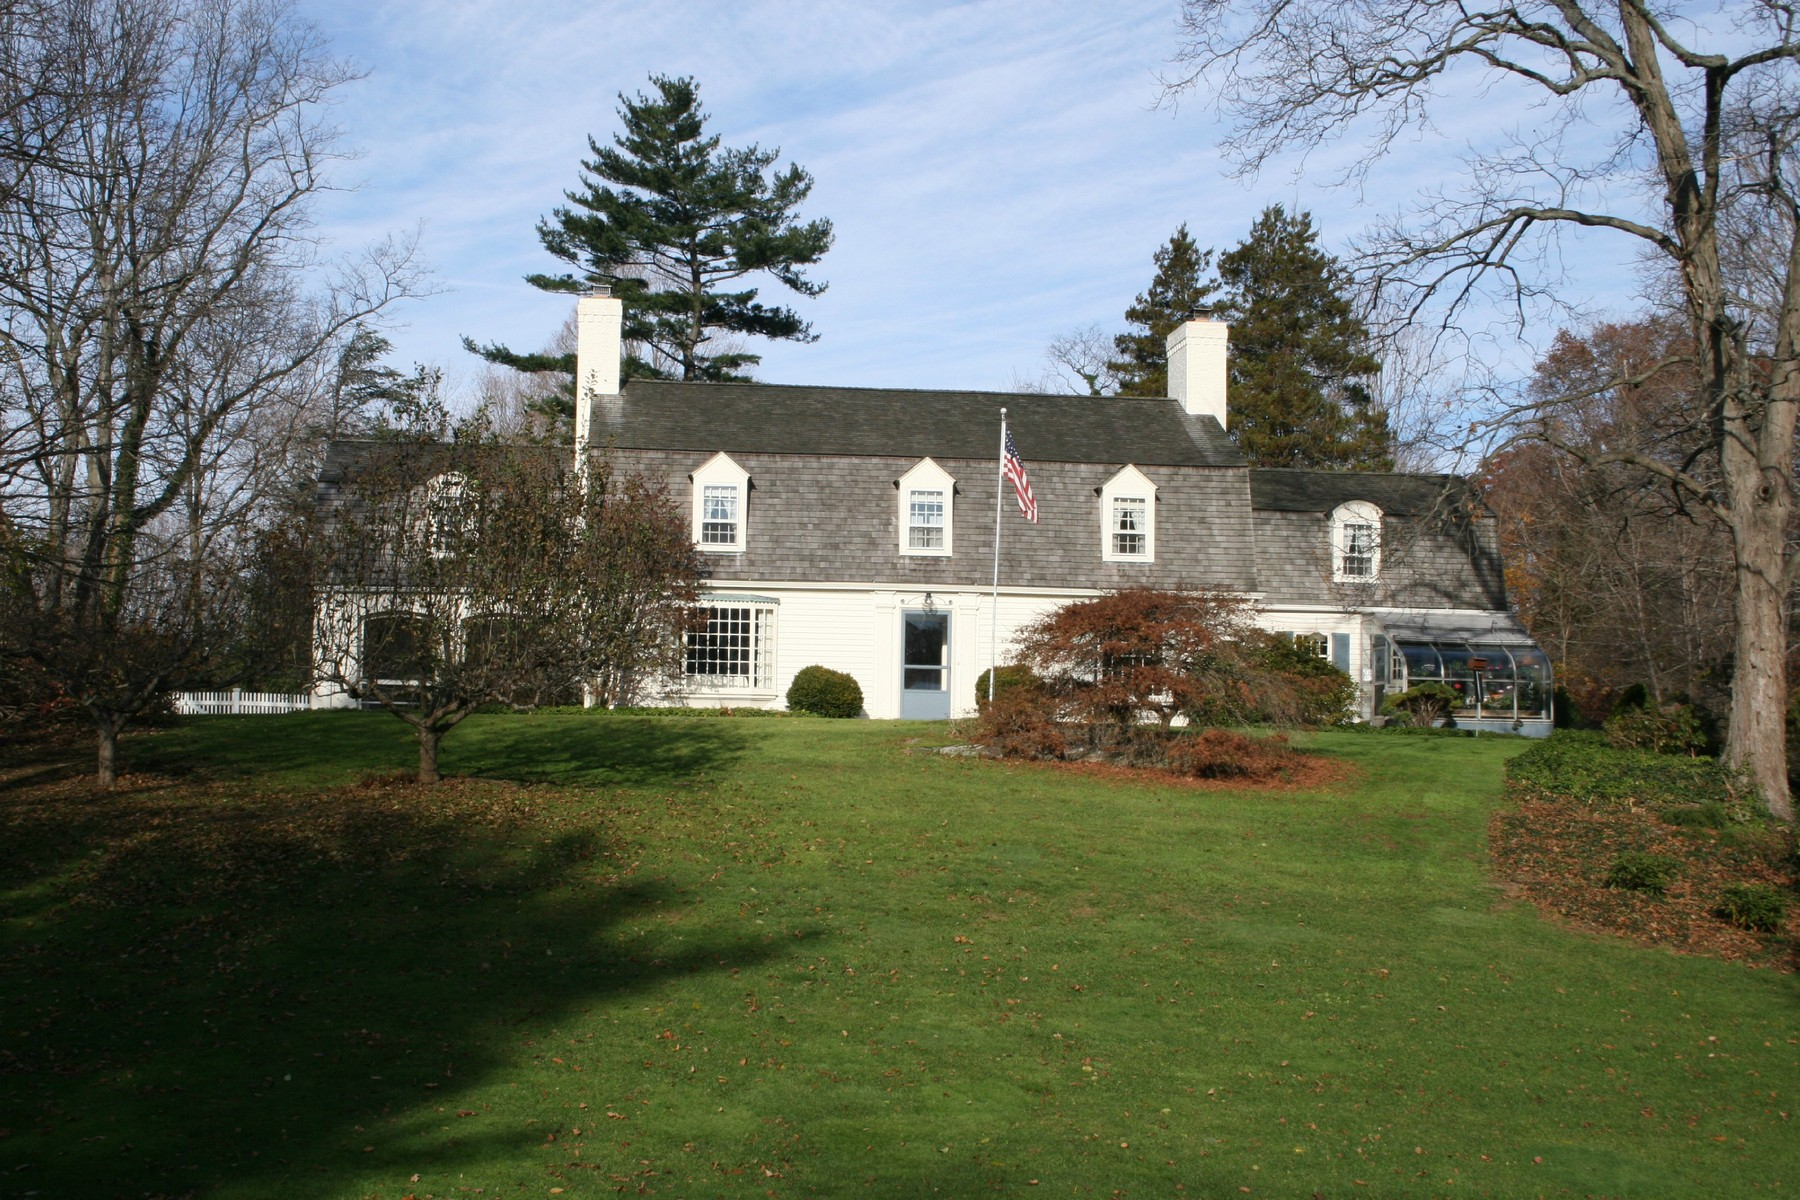 Single Family Home for Sale at 350 Harbor Road Southport, Fairfield, Connecticut 06890 United States